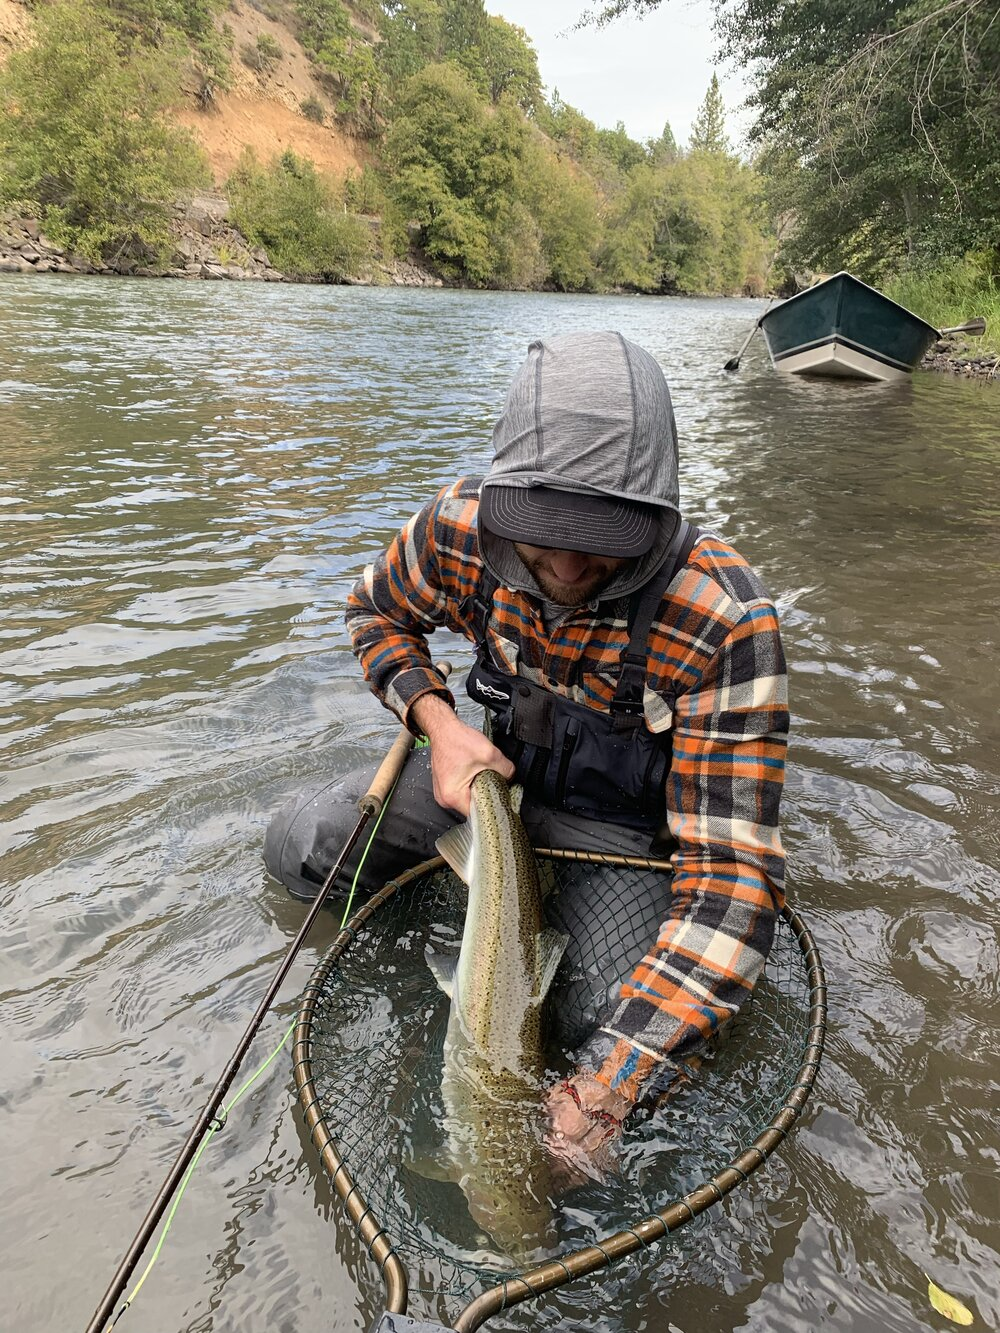 Questions About Streamer Fishing?